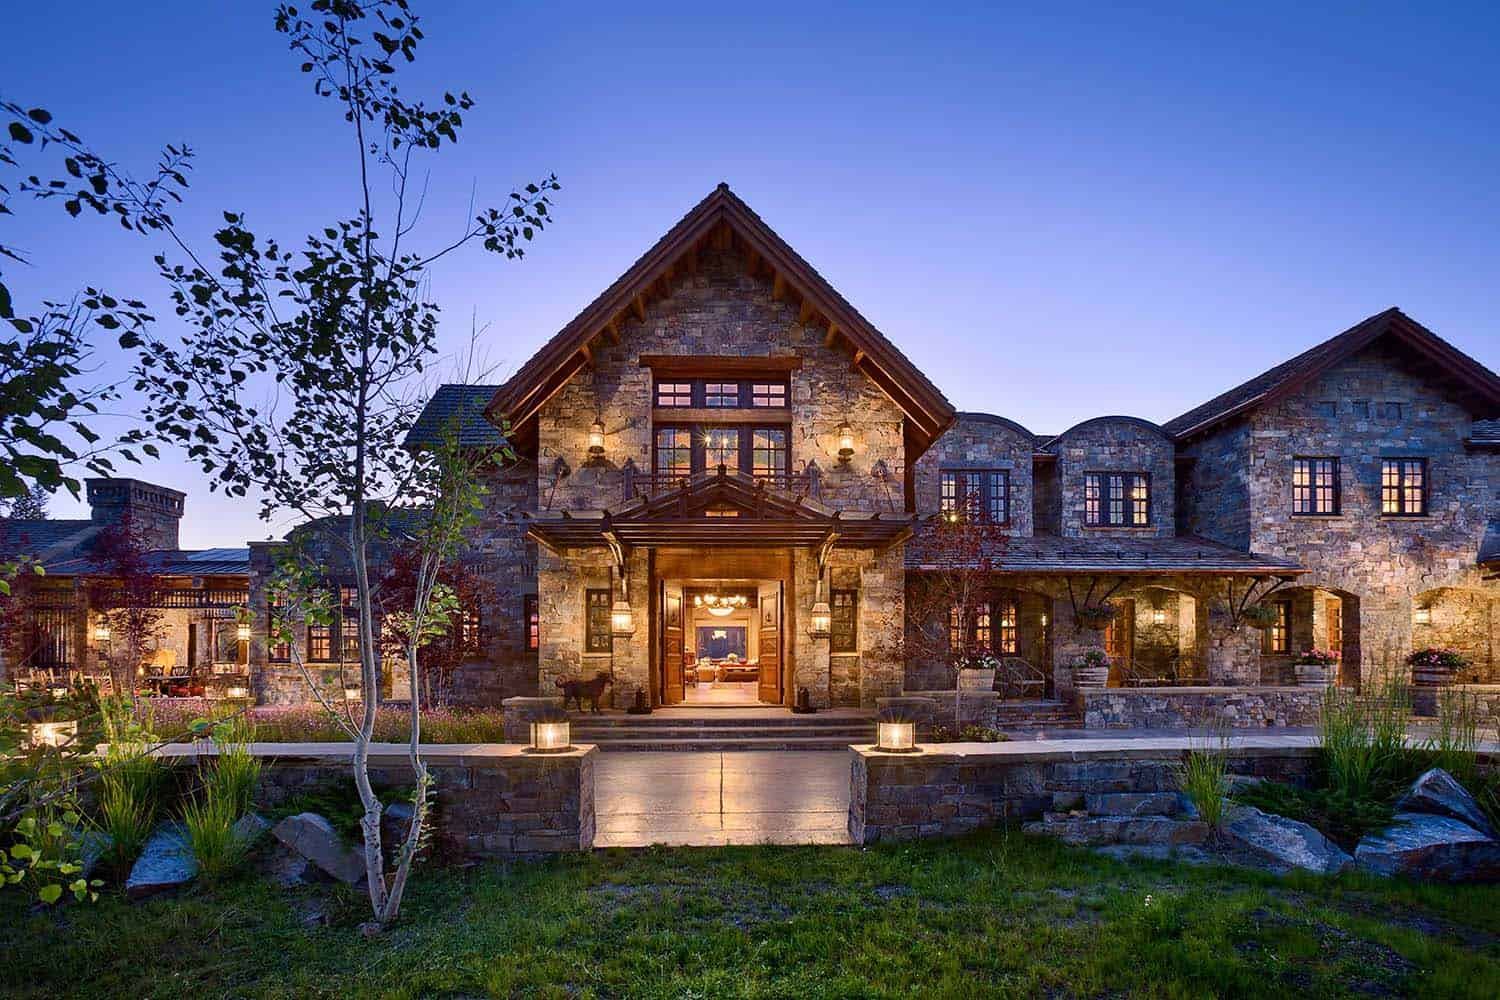 Luxury Bathroom Floor Plans A Dream Home In Big Sky With Rustic Mountain Style